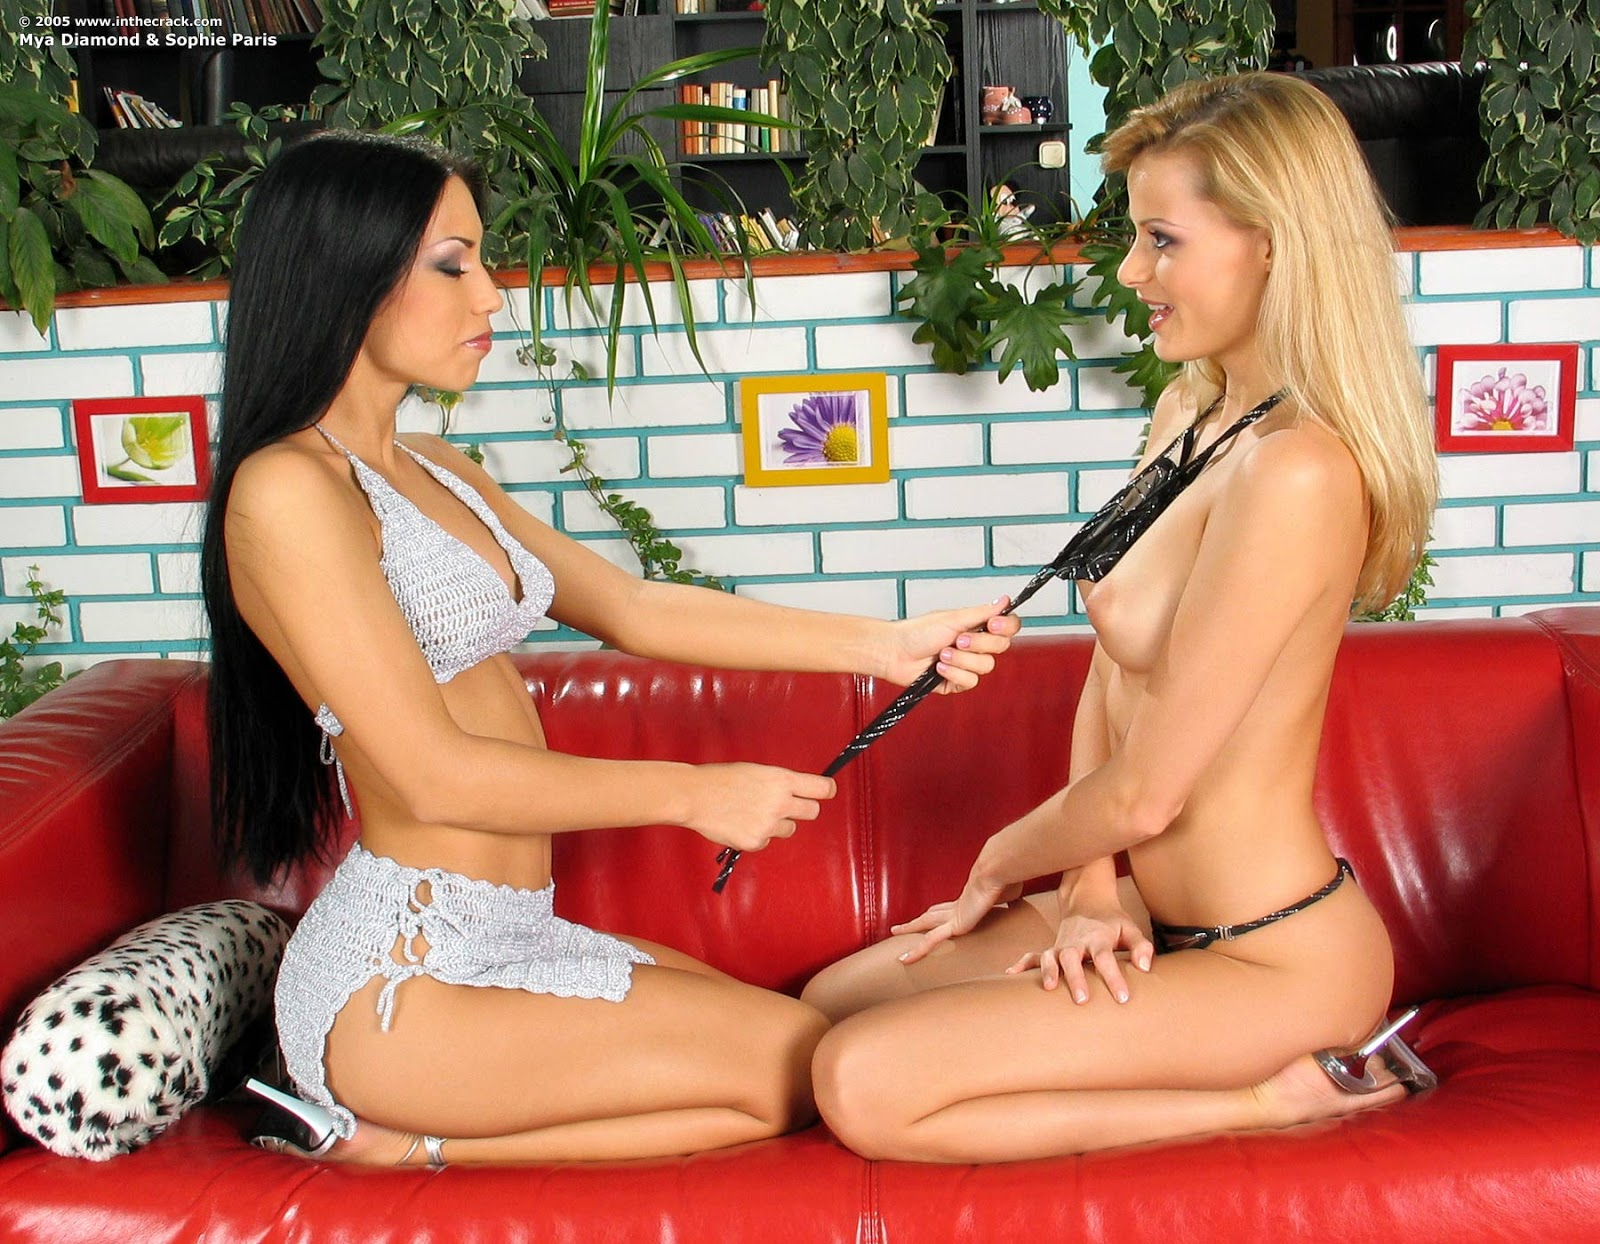 Sophie paris and mya diamond remarkable, rather